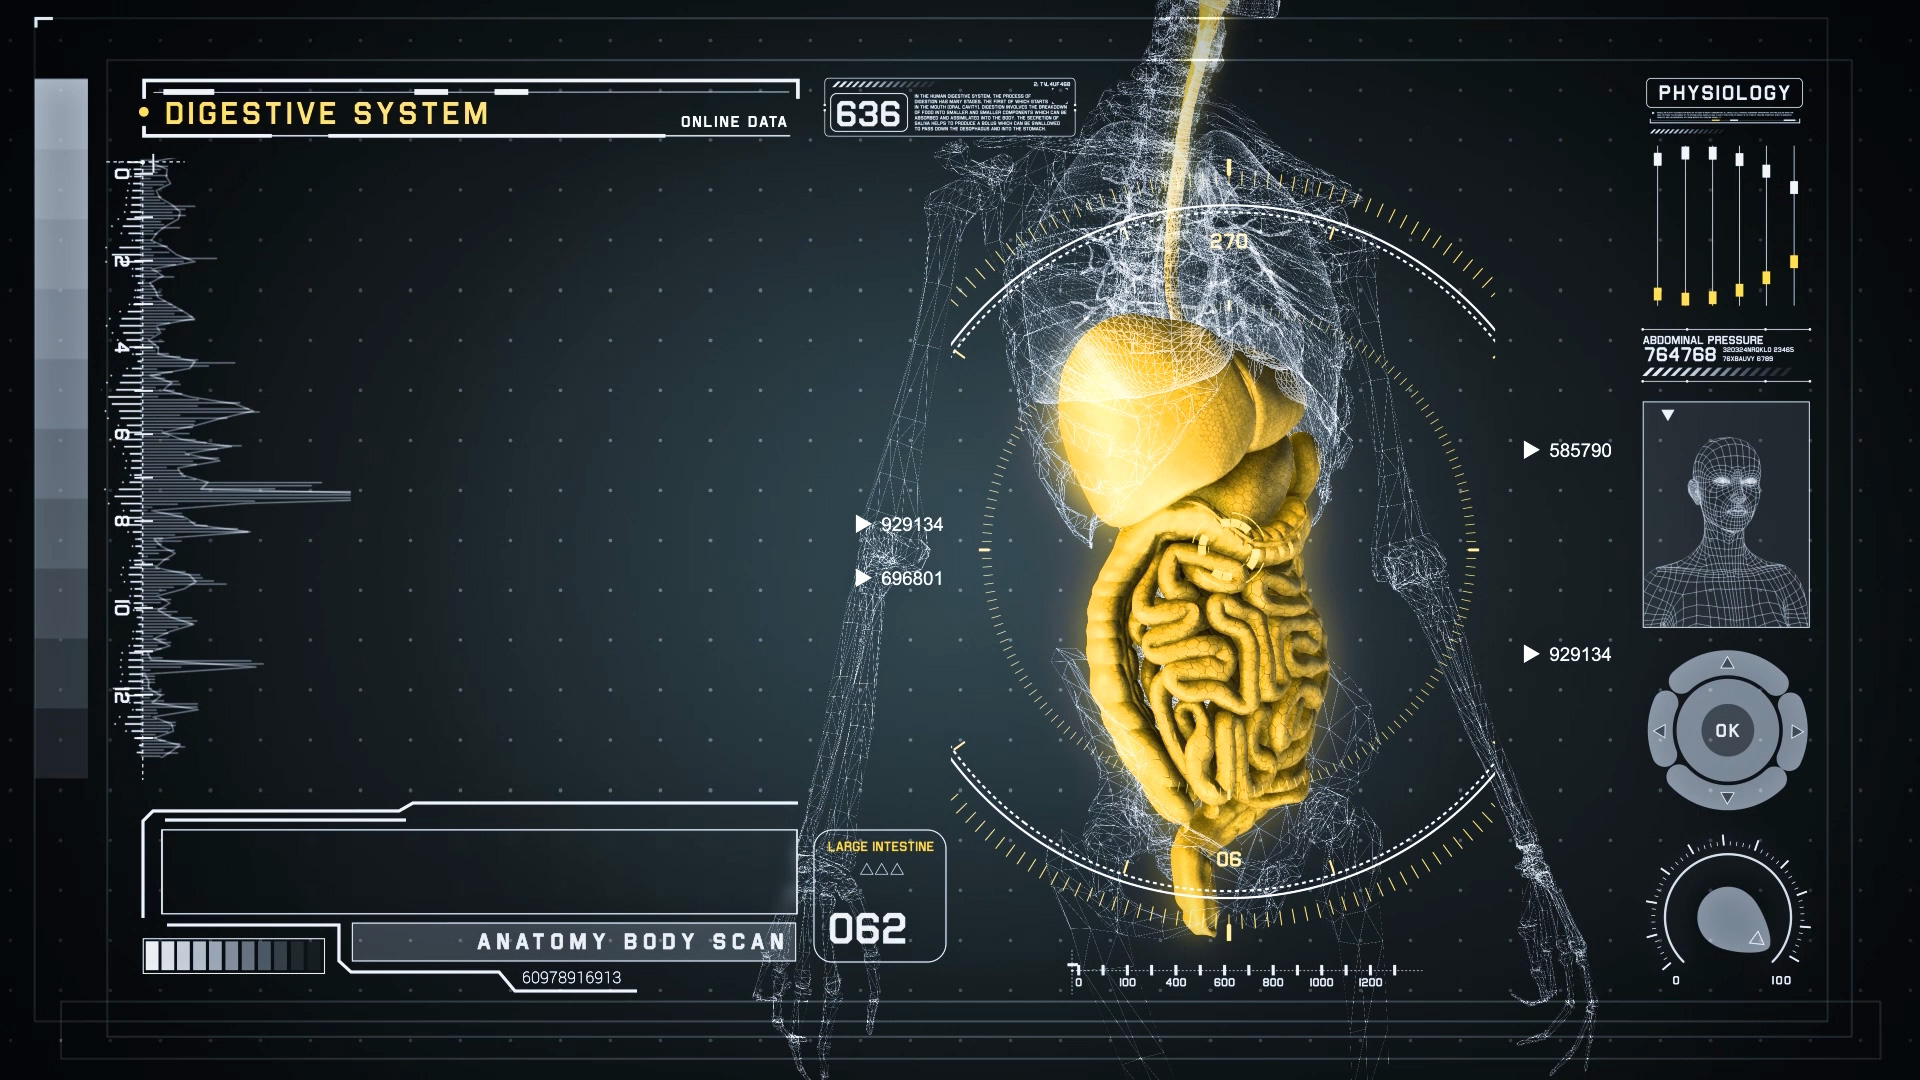 3d Hologram Wallpaper App Futuristic Interface Display Of Human Body Scan With